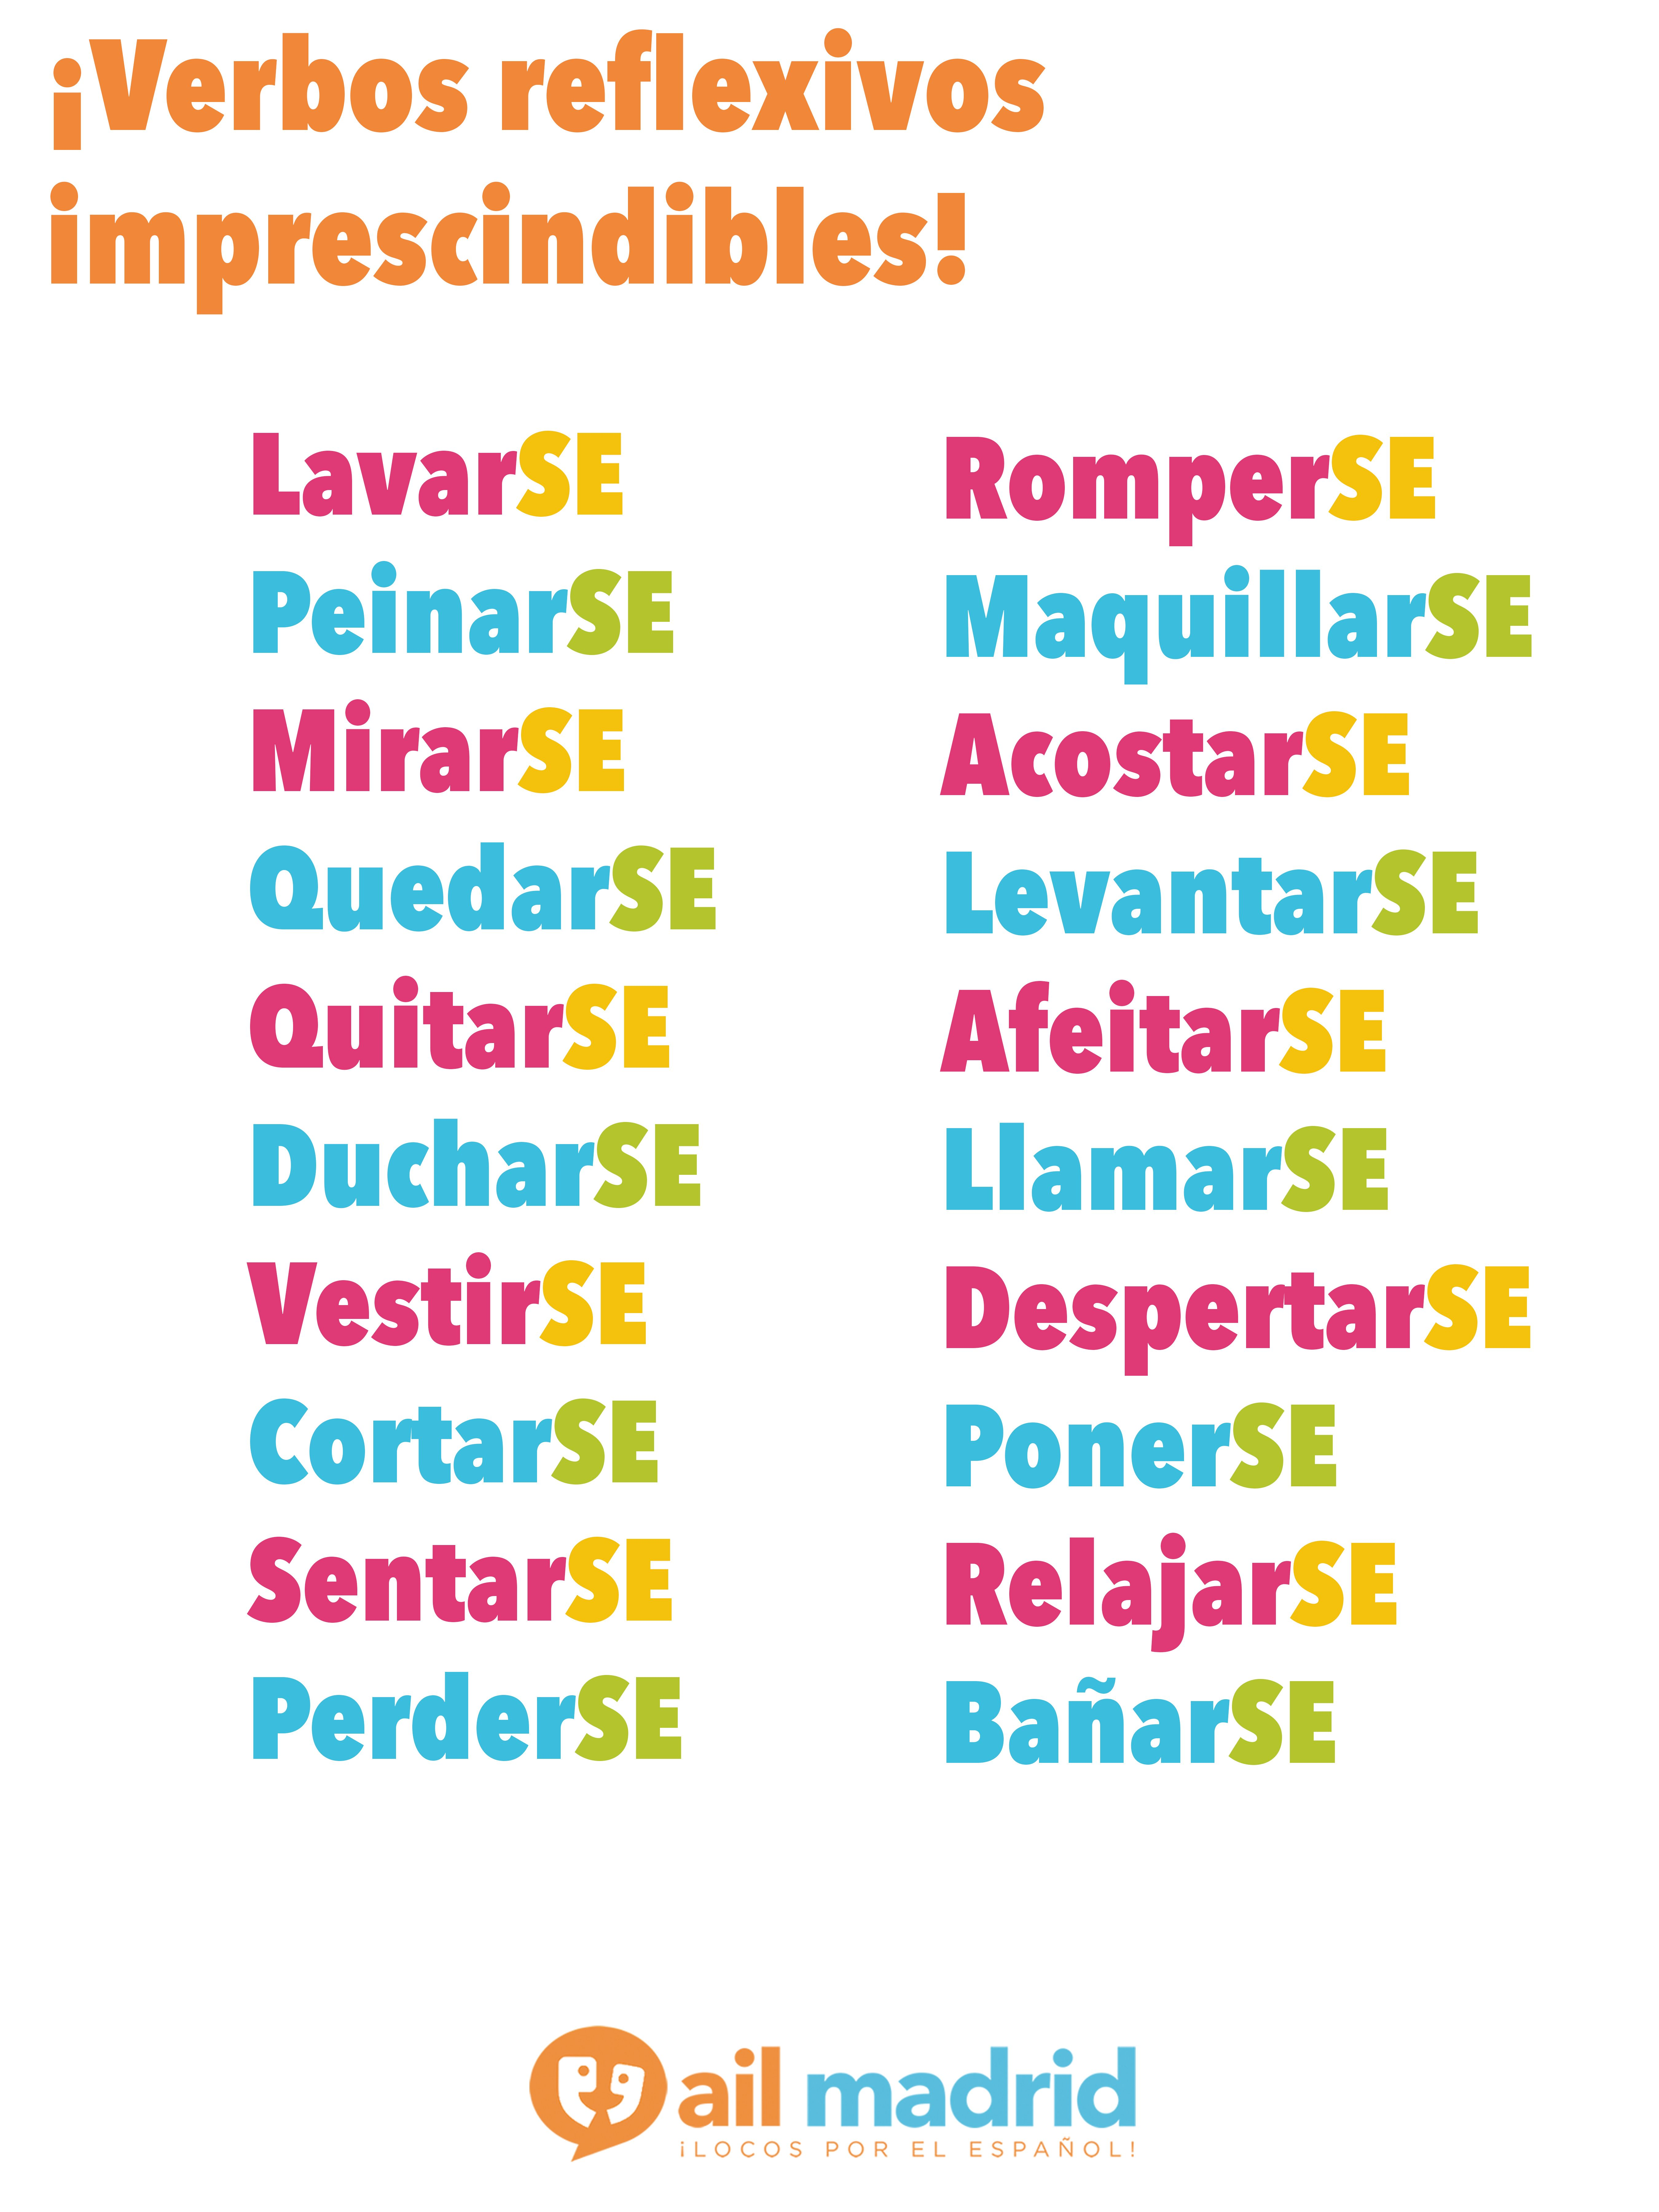 Don T Forget These Spanish Reflexive Verbs Spanish Reflexive Verbs Spanish Verbs Learning Spanish [ 7200 x 5400 Pixel ]